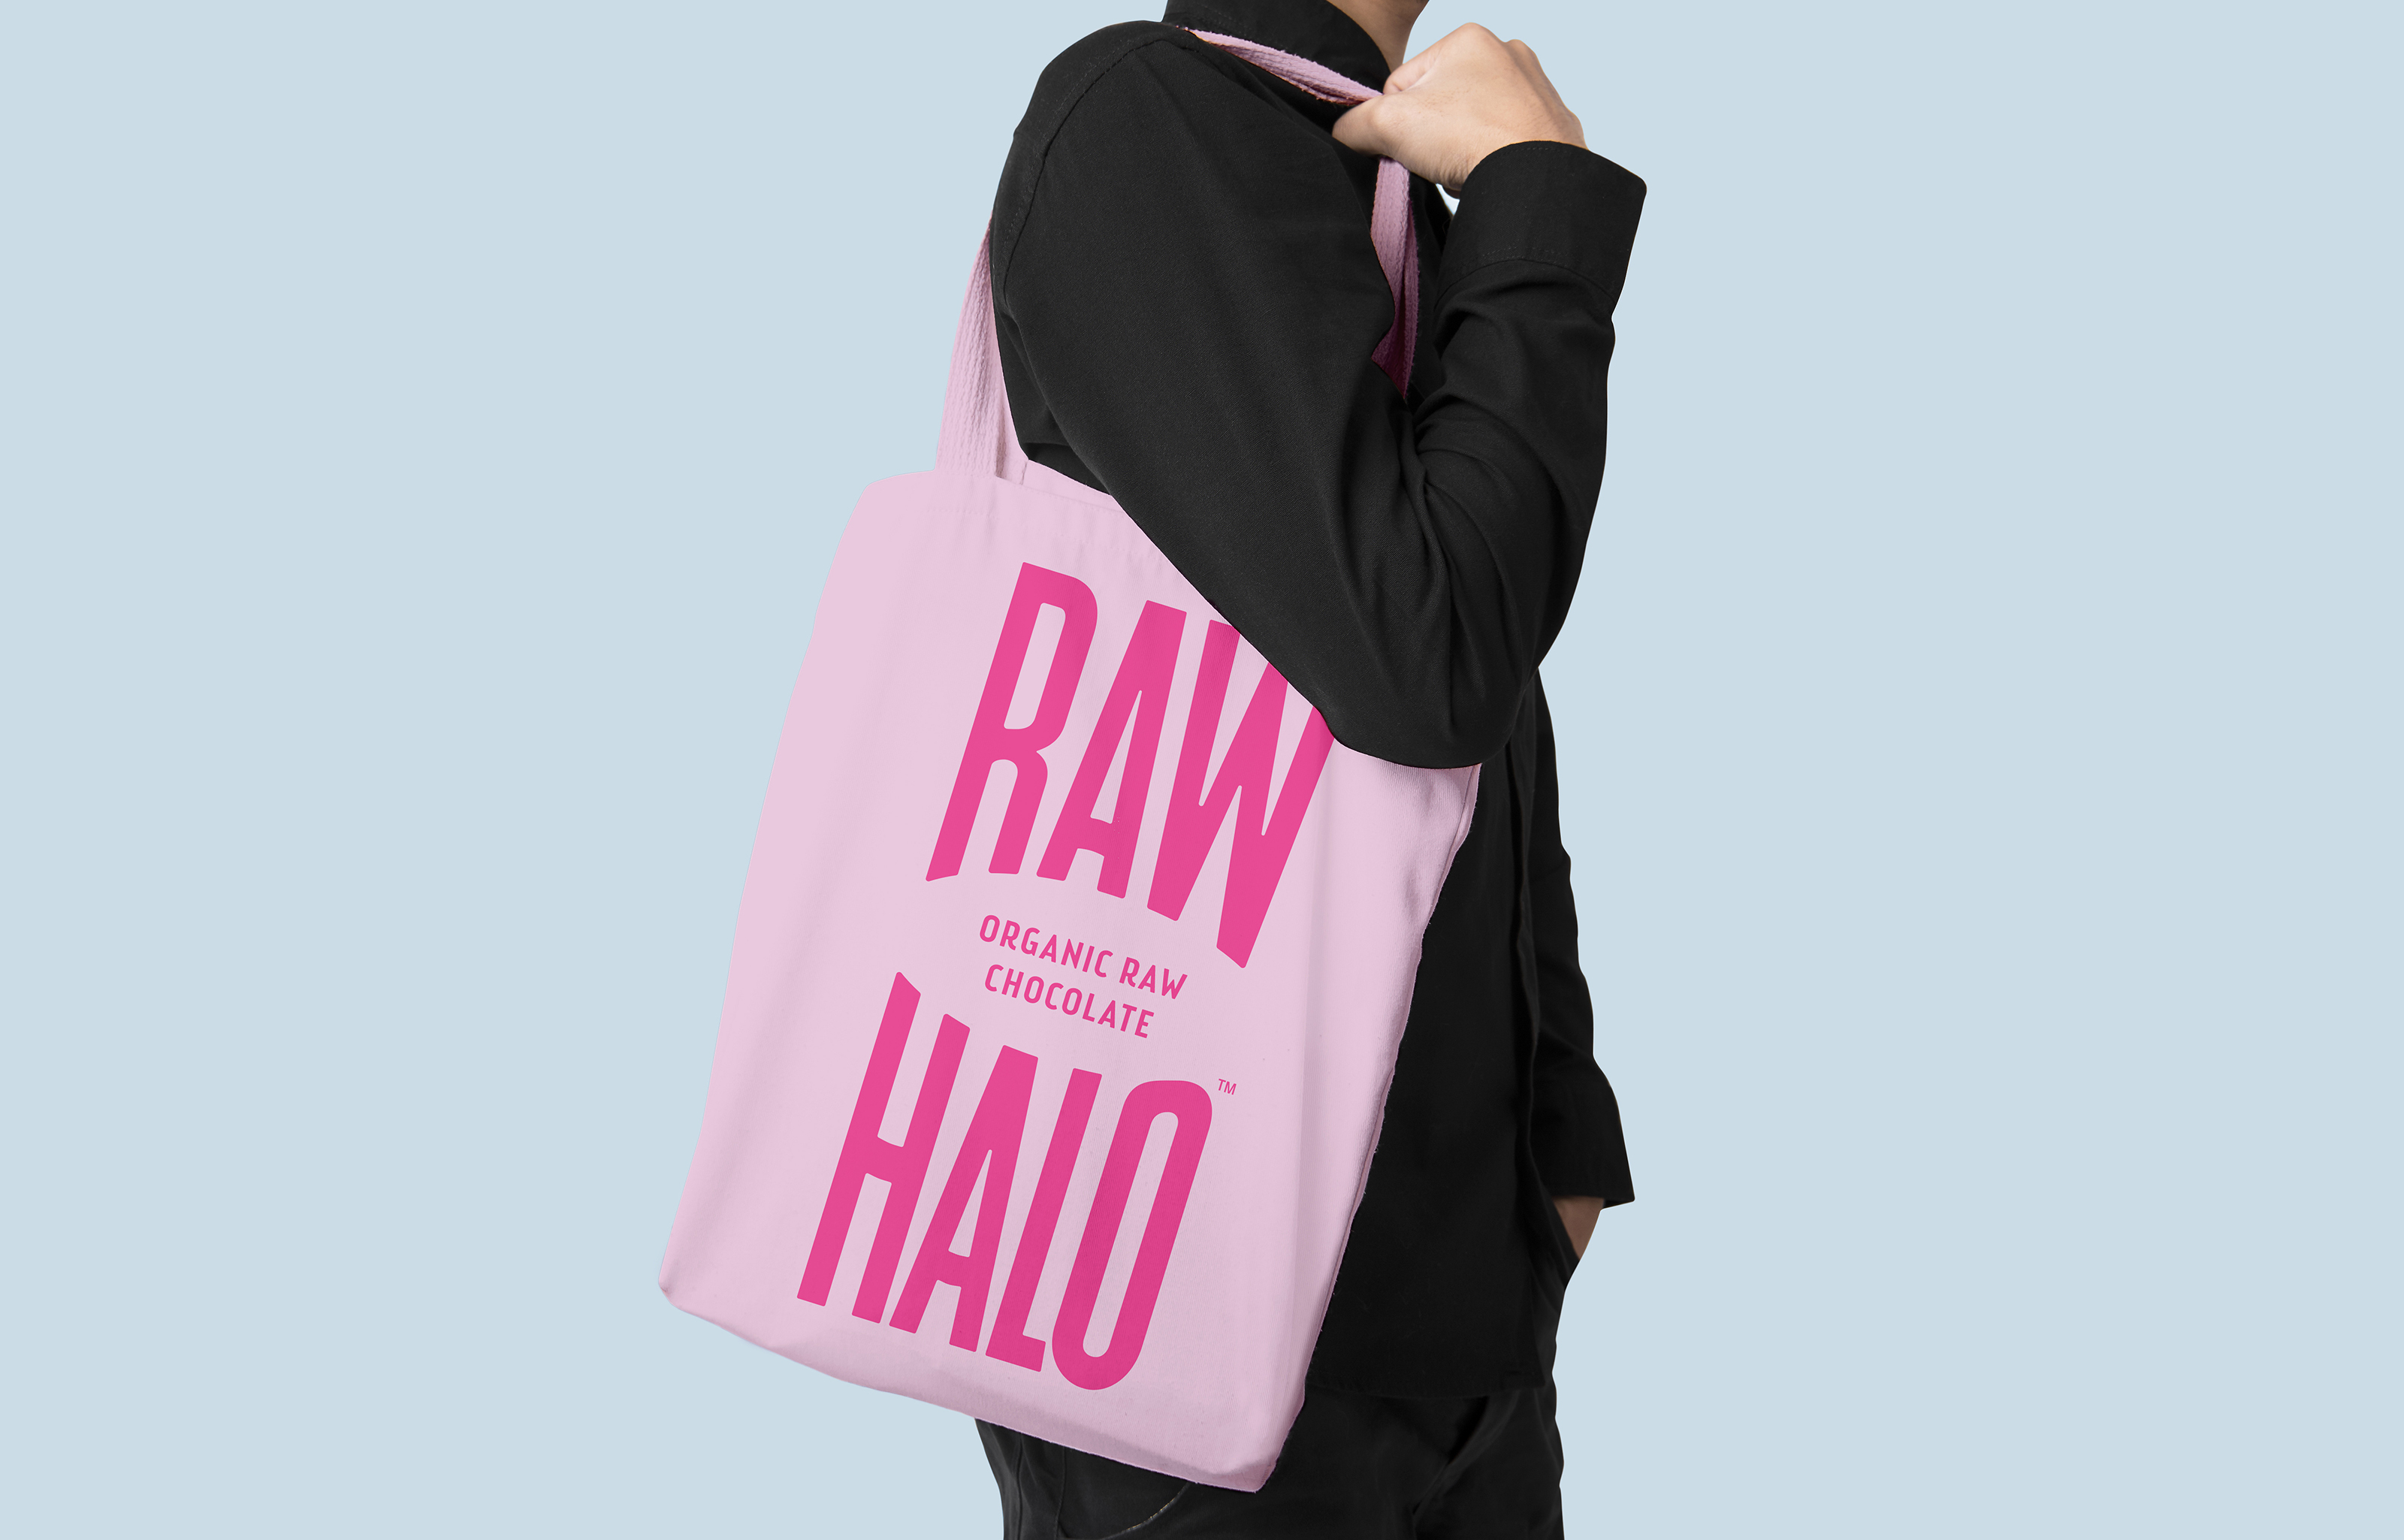 Raw Halo Tote Bag